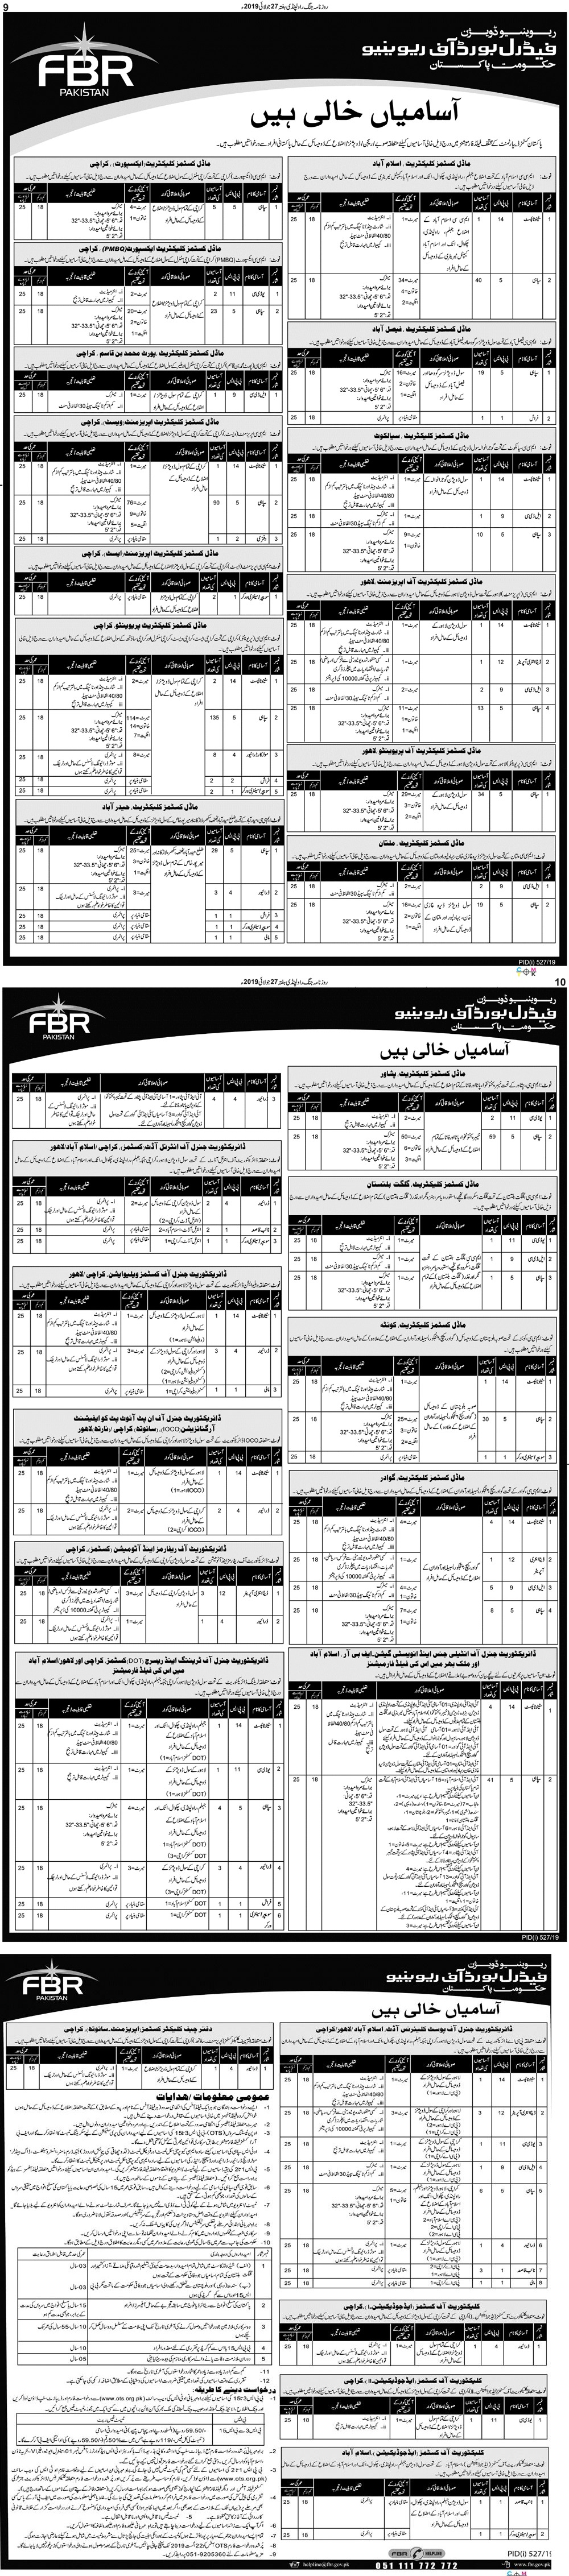 FBR jobs 2021 announced,eligibility criteria,download application form